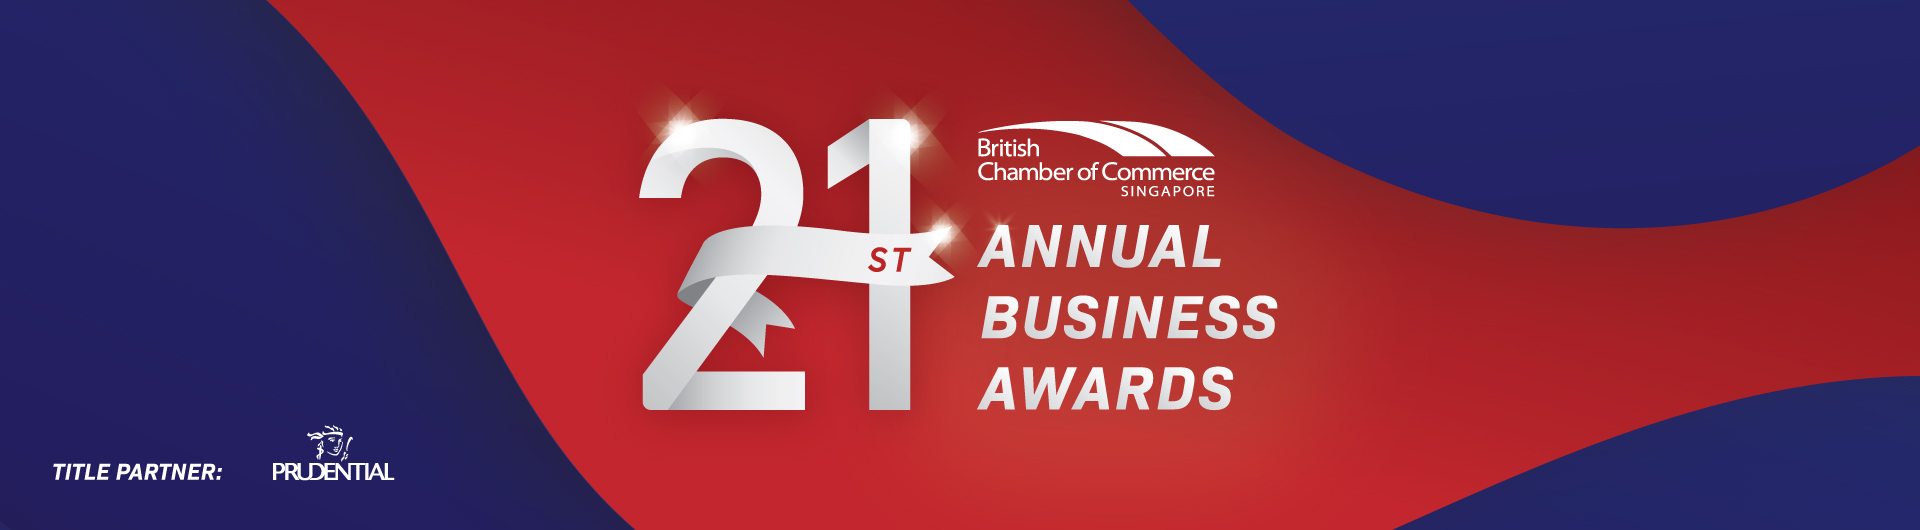 21 Annual Business Awards